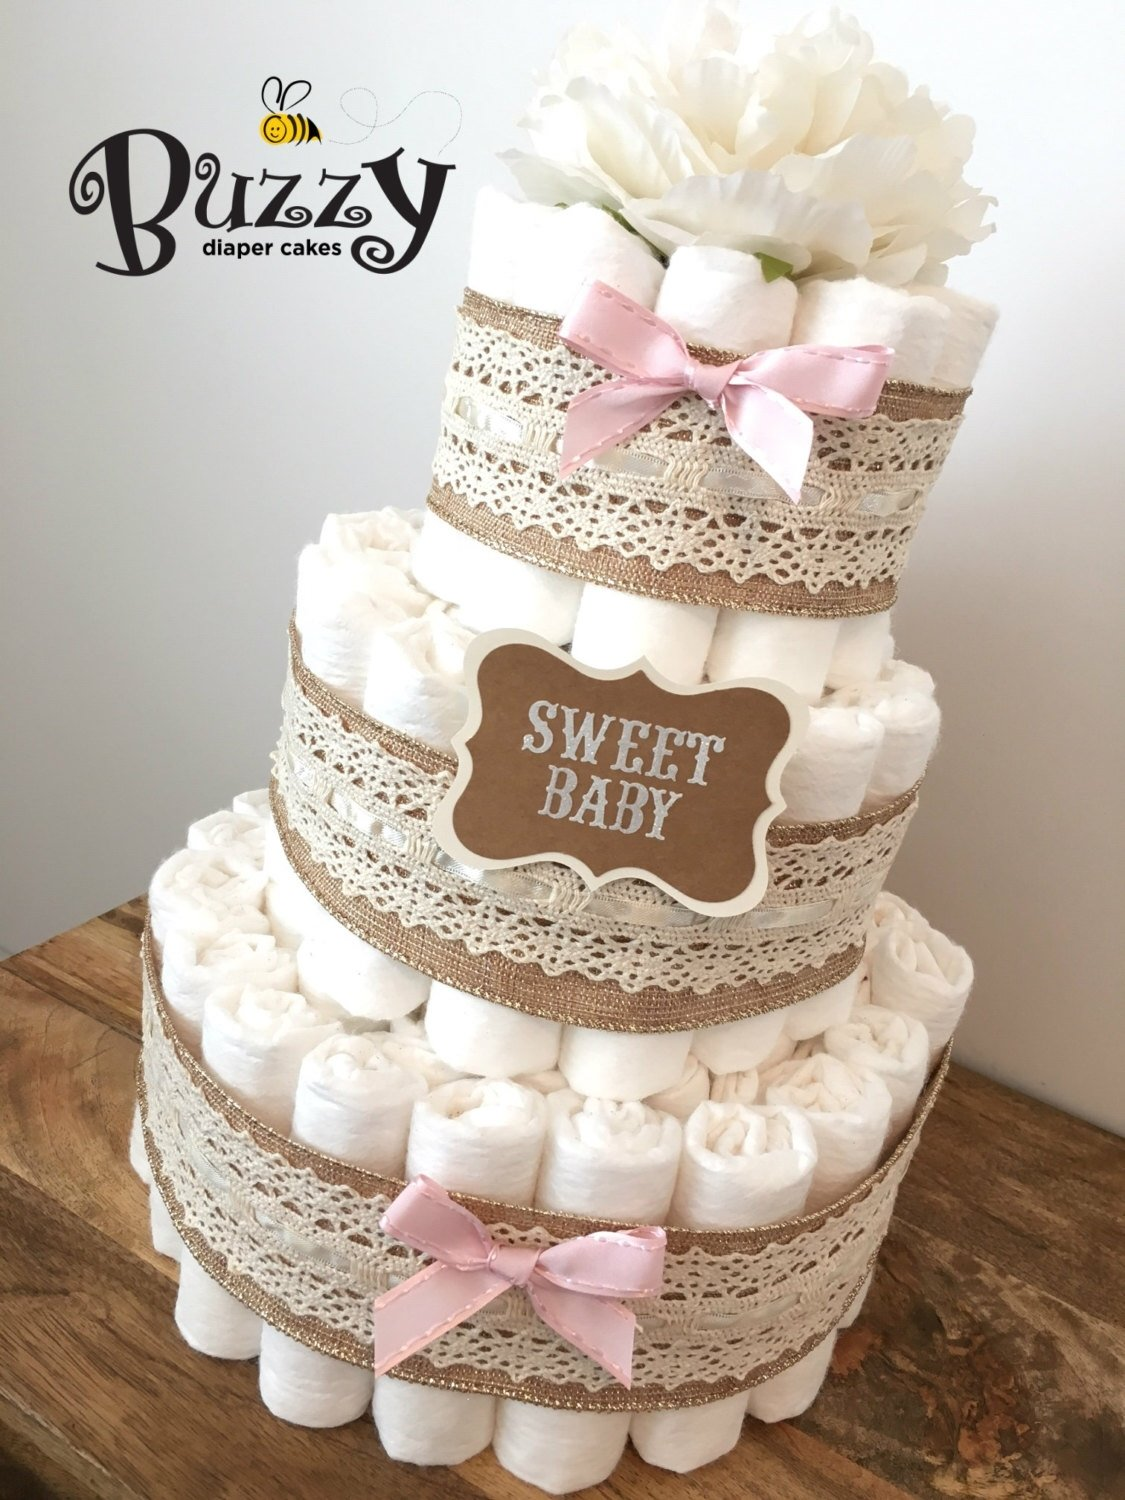 10 Fantastic Diaper Cake Ideas For Girls download how to make baby shower diaper cakes for girls 2020